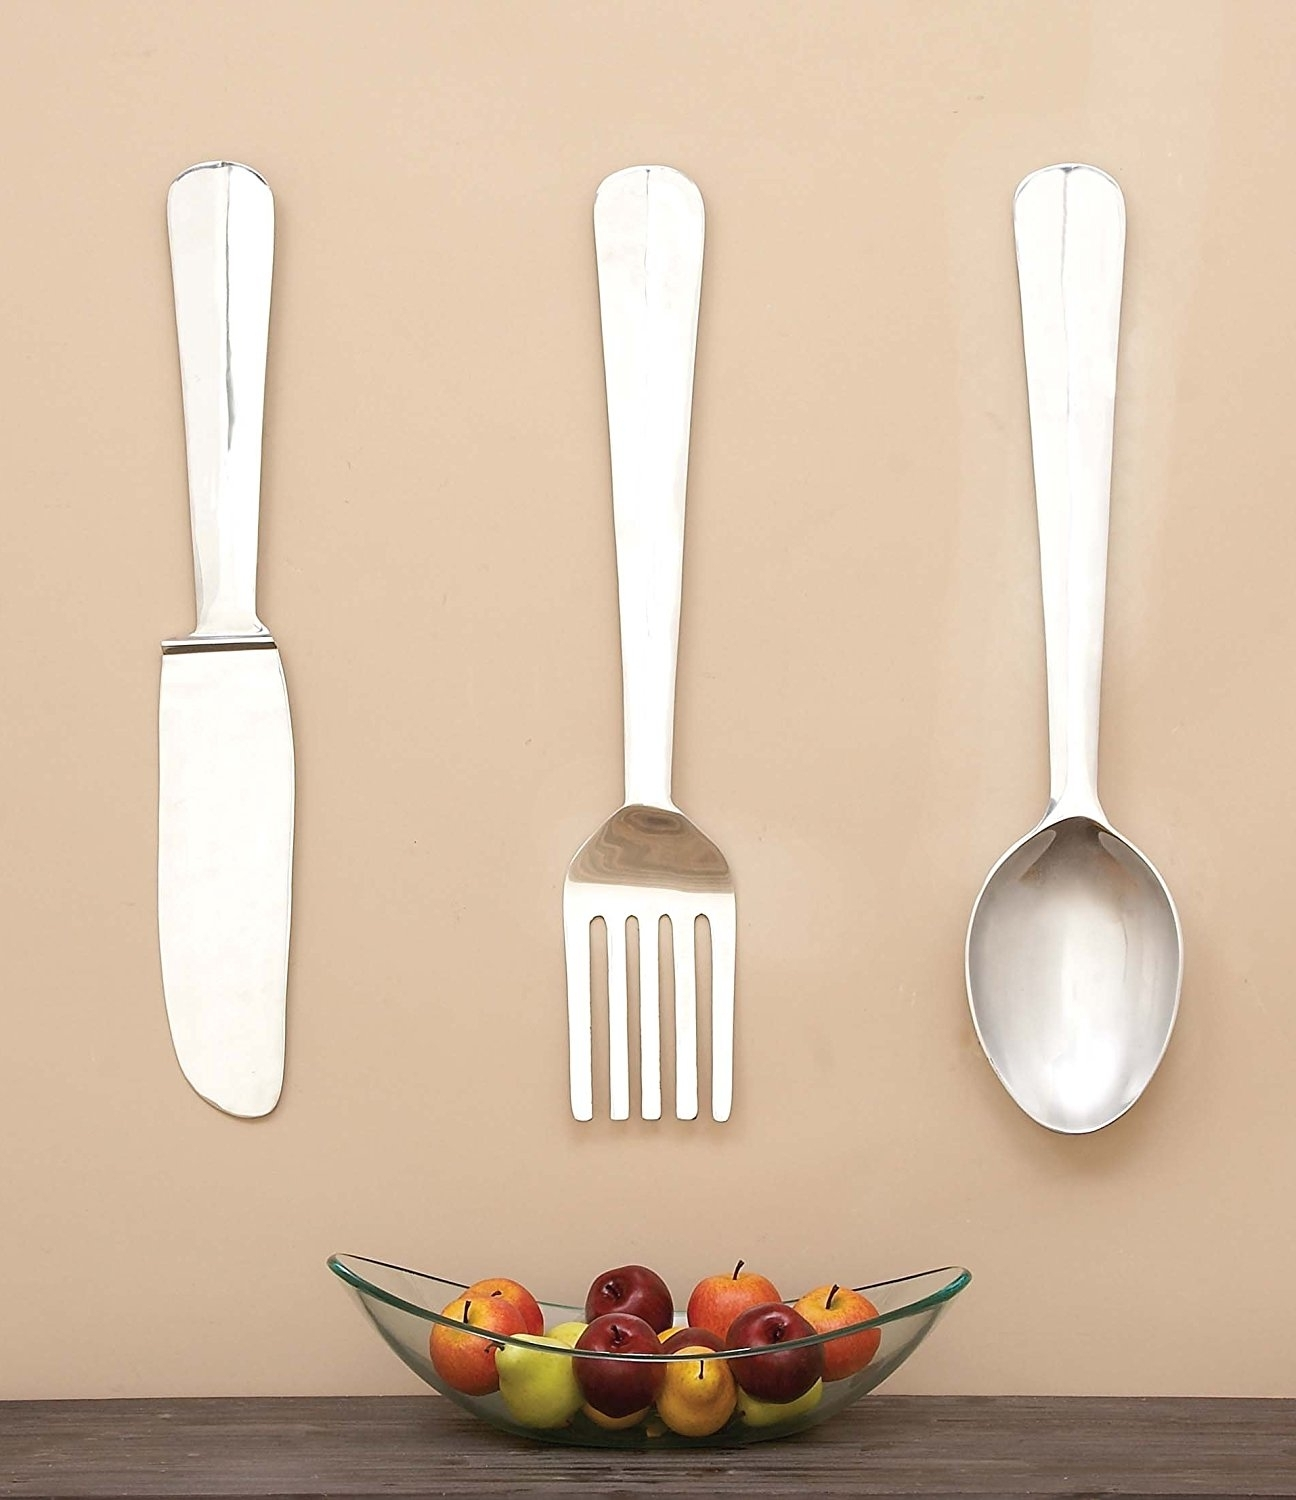 Amazon: Deco 79 Aluminum Wall Decor, 368 Inch, Set Of 3 Intended For 2017 Utensil Wall Art (View 1 of 15)